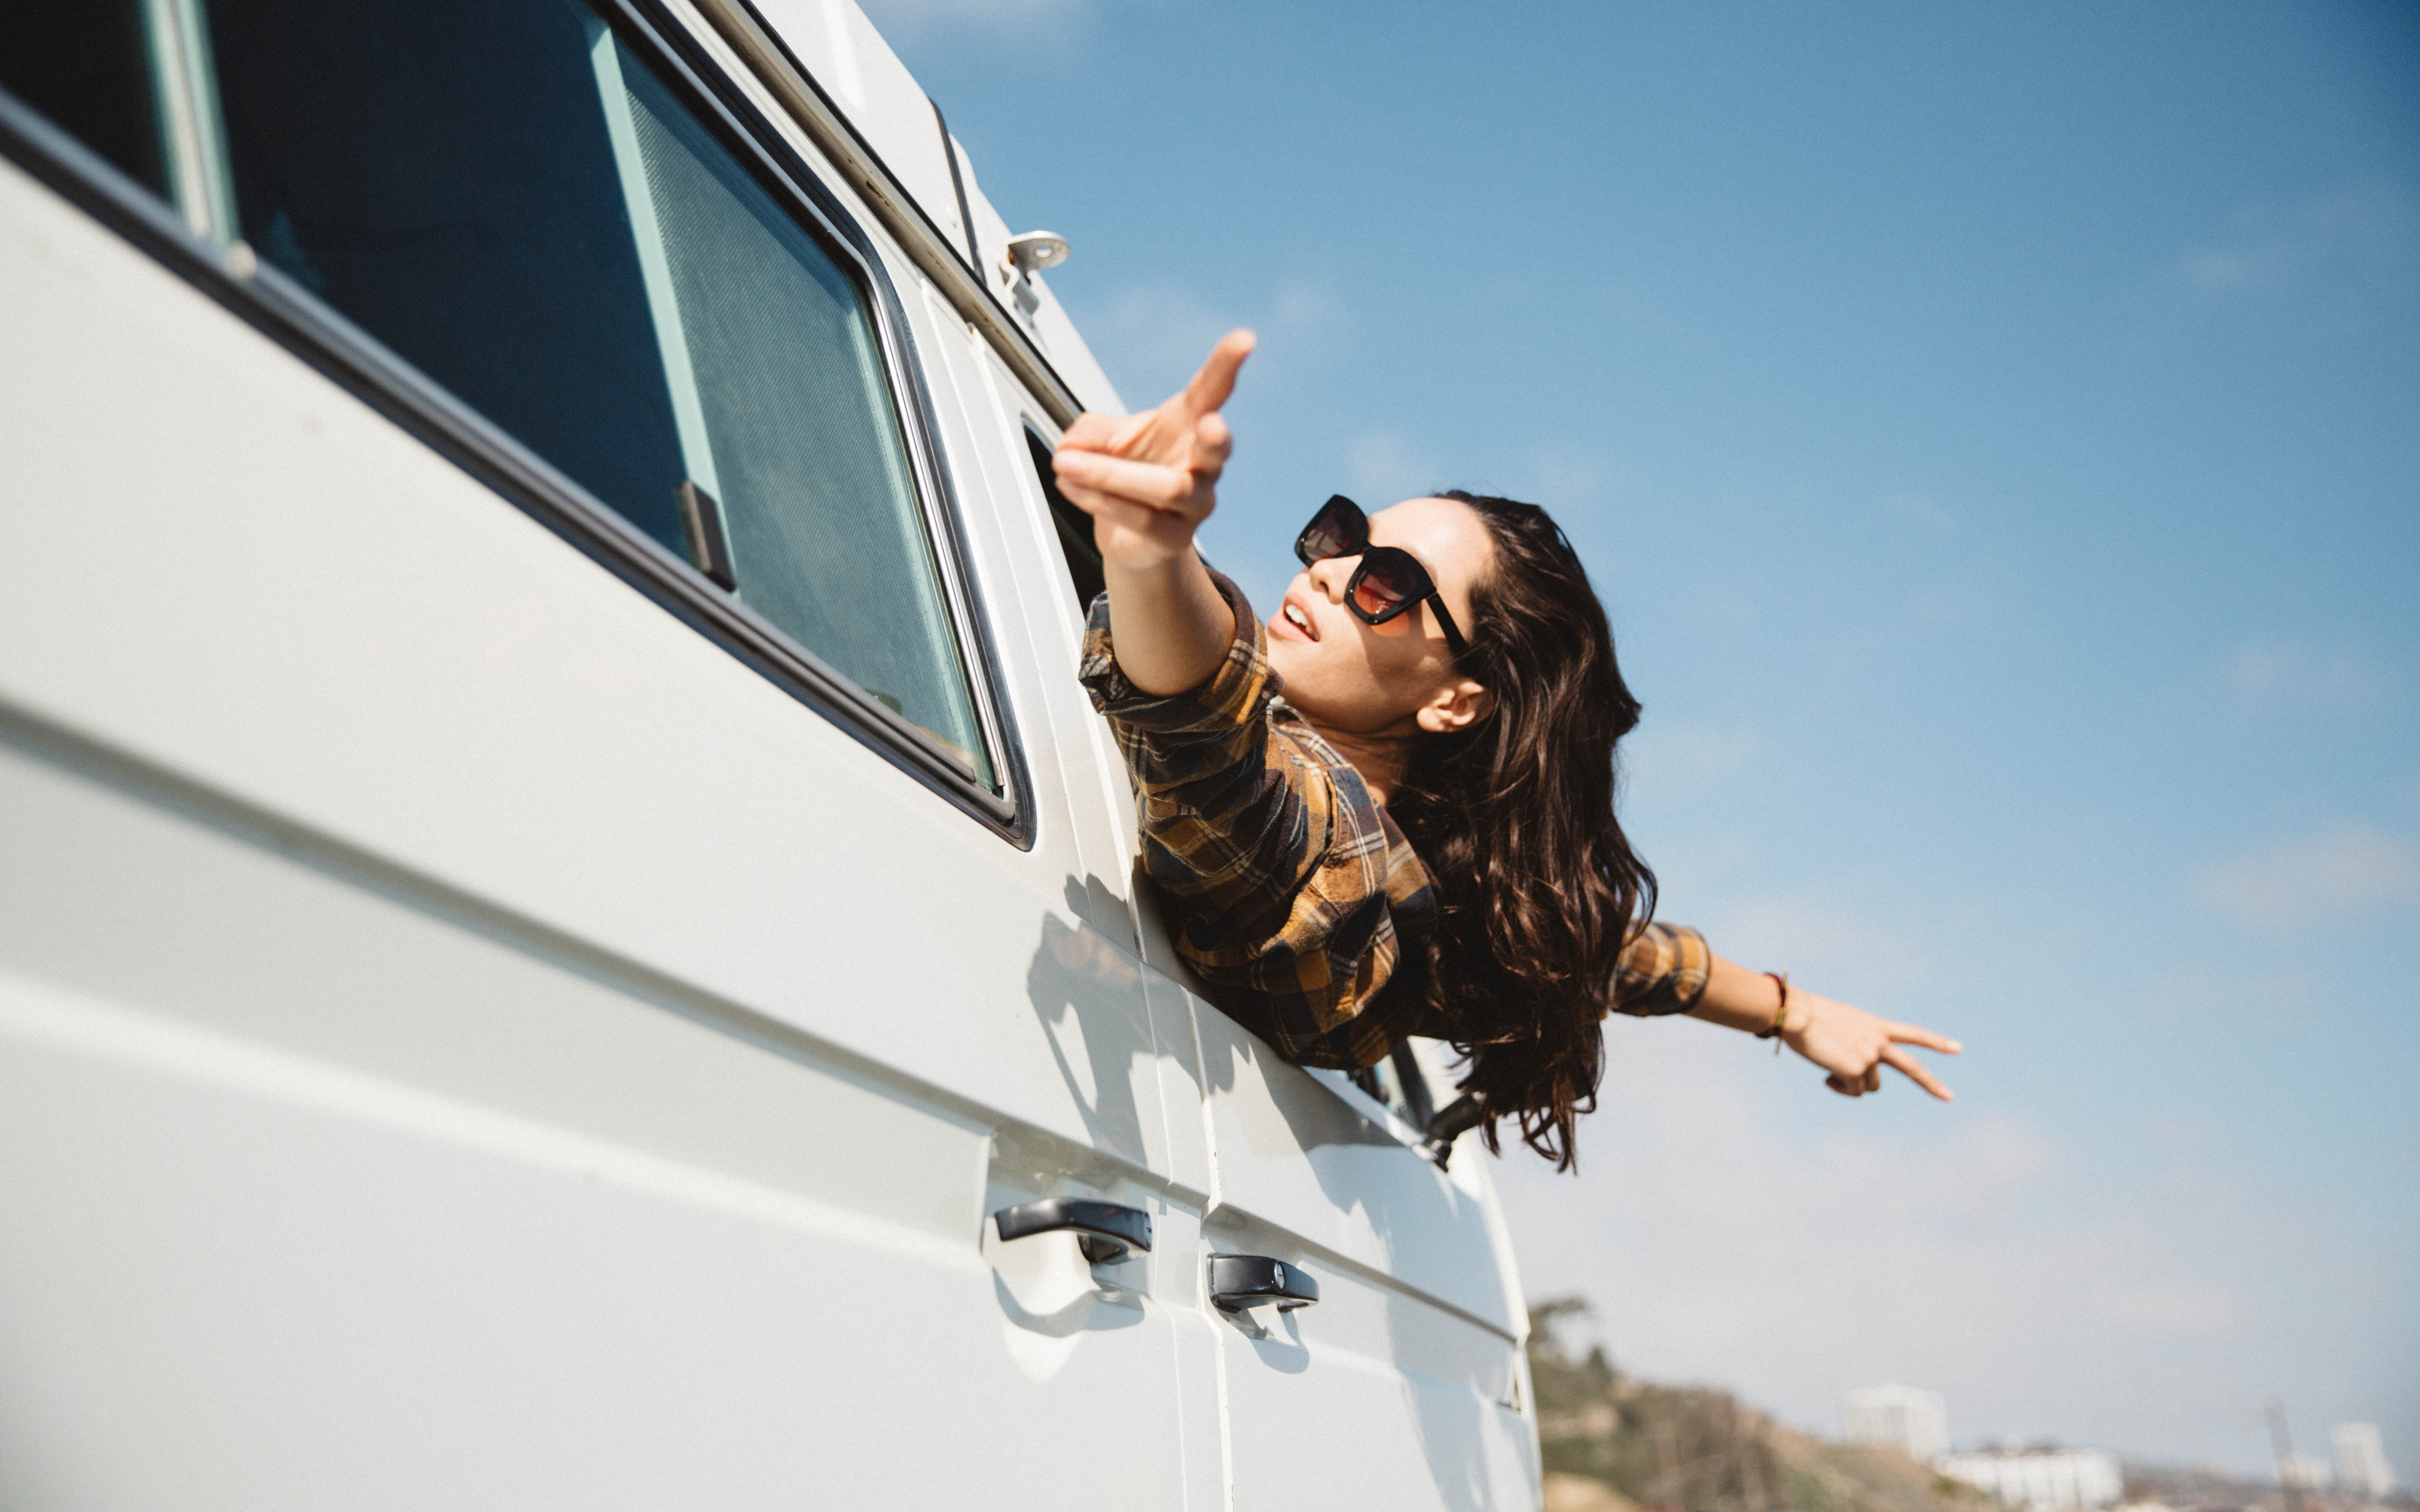 A woman leans out of a campervan with her hands in the air and her fingers making the peace sign